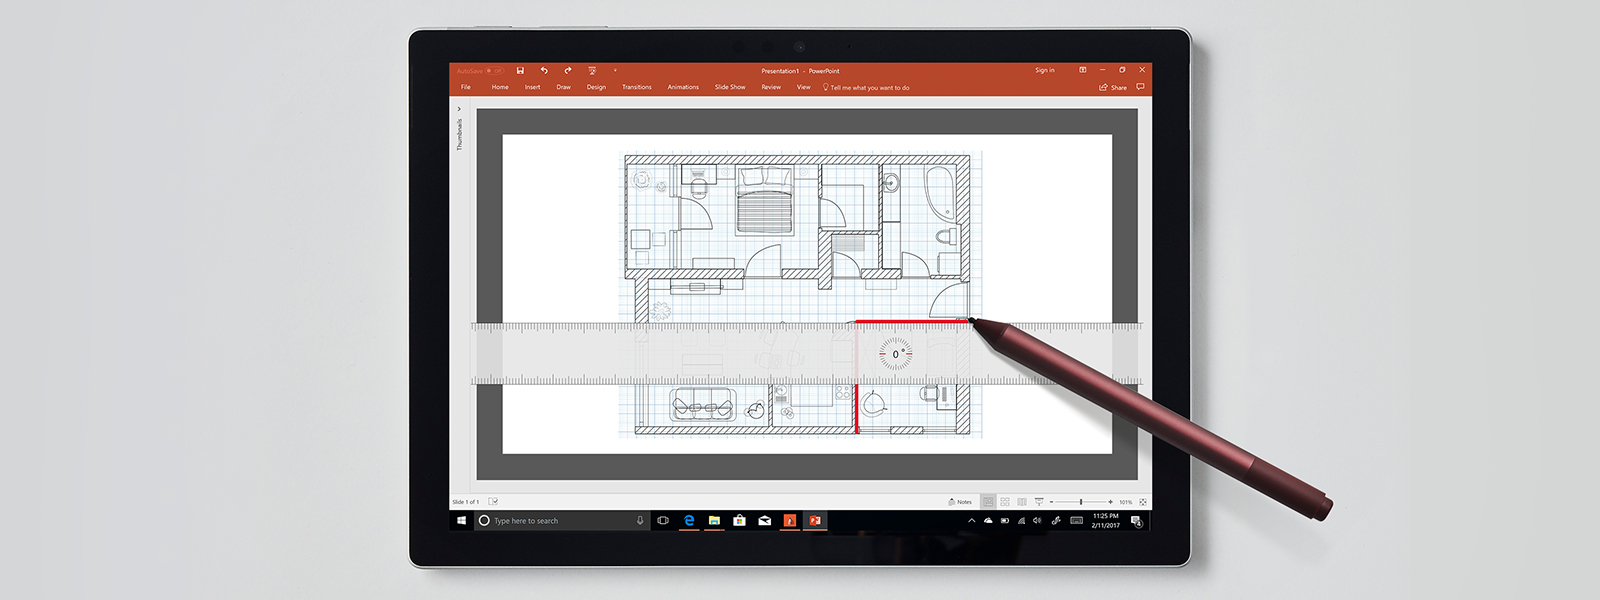 Microsoft Powerpoint presentation on a Surface device